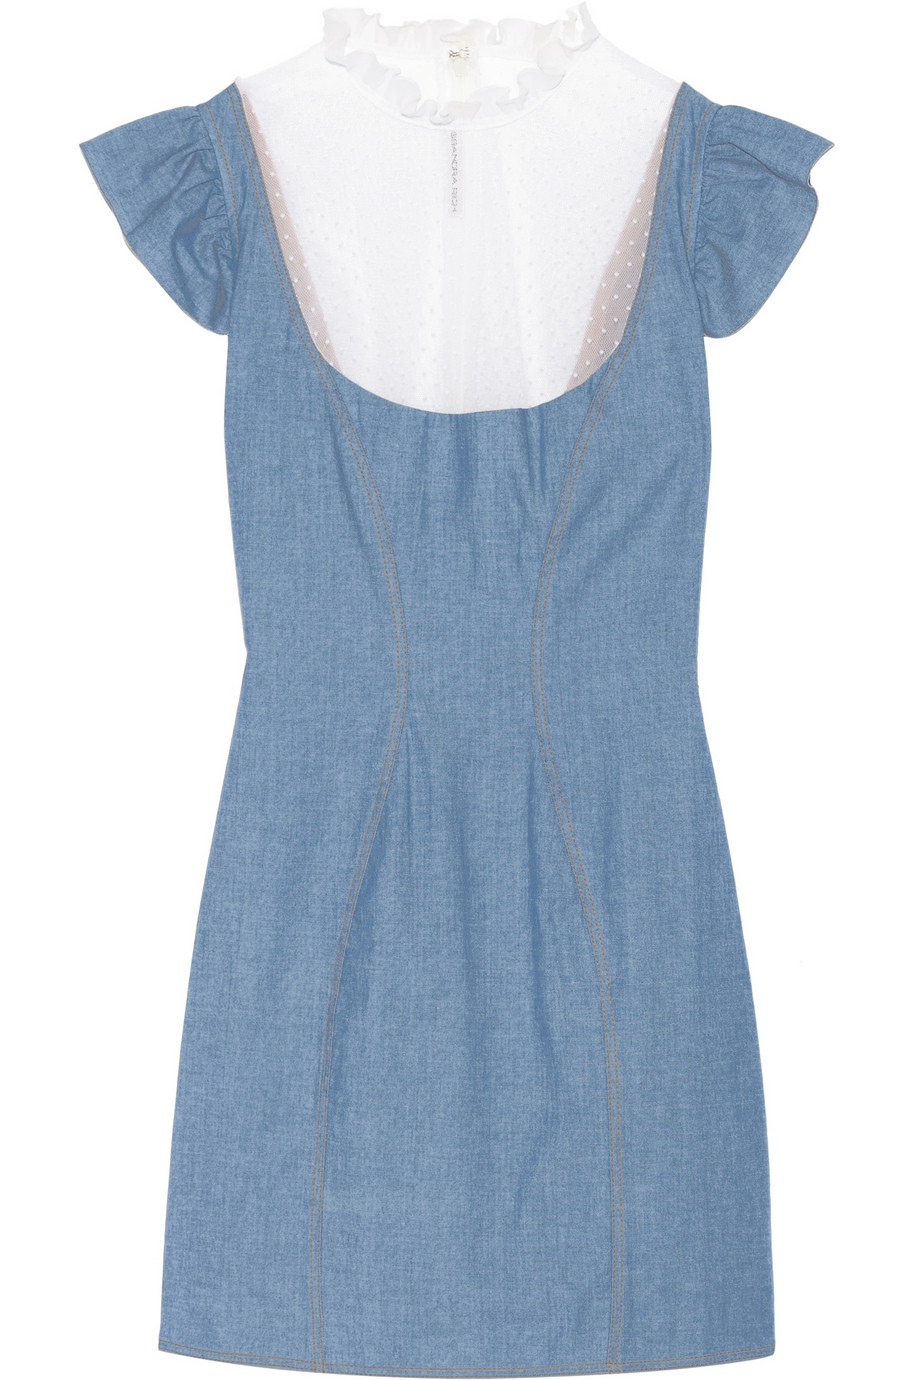 Alessandra rich Chambray Mini Dress And Lace Maxi Skirt Set in ...